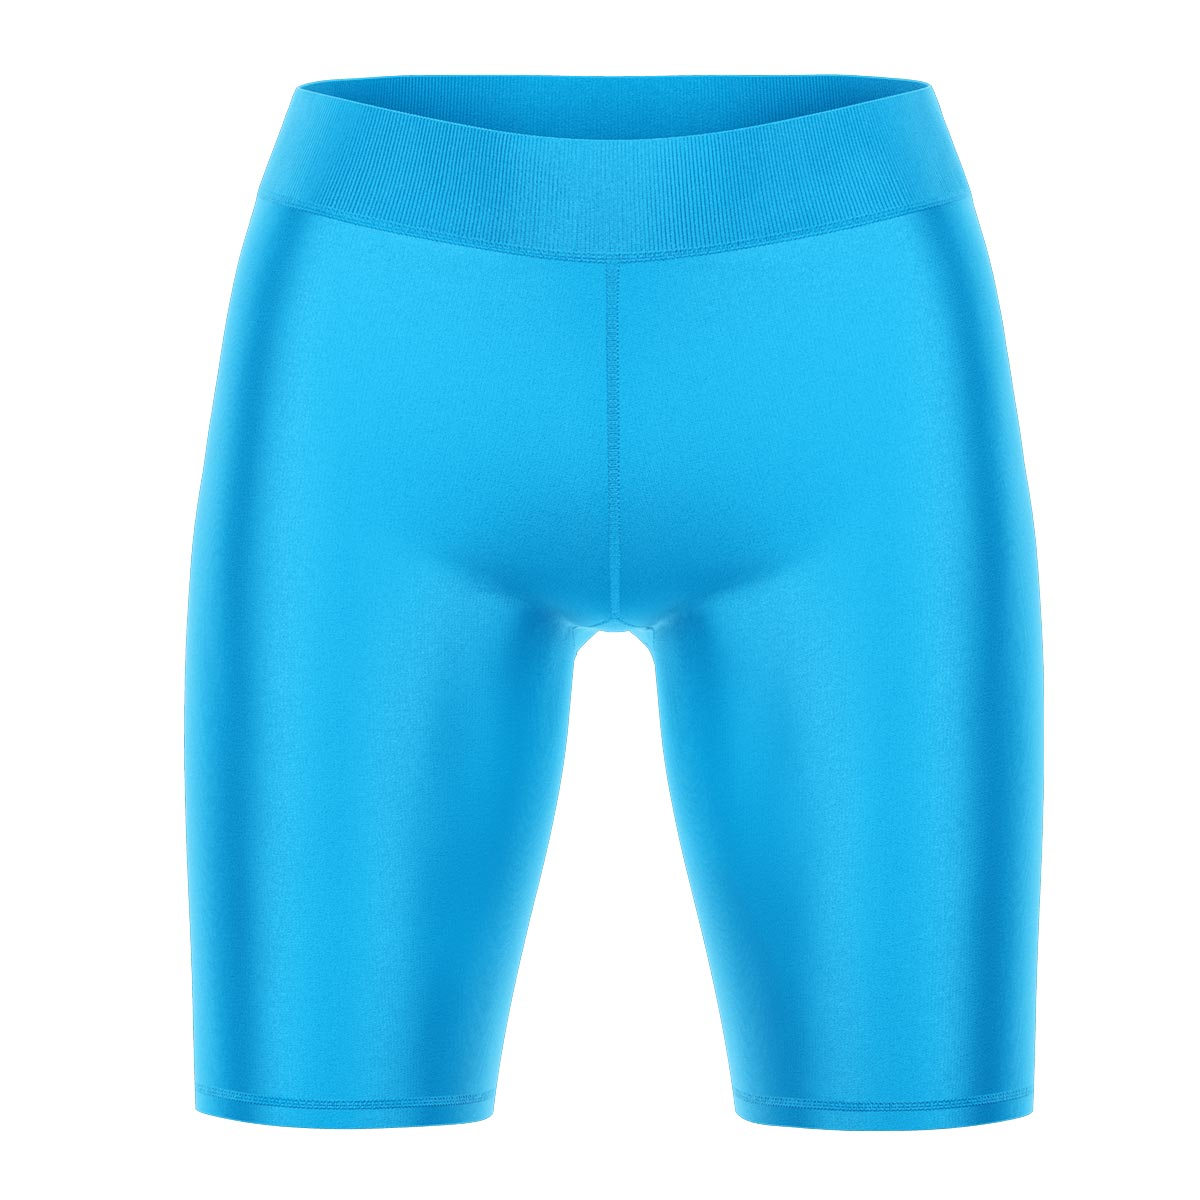 BRIGHT BLUE Yoga Shorts